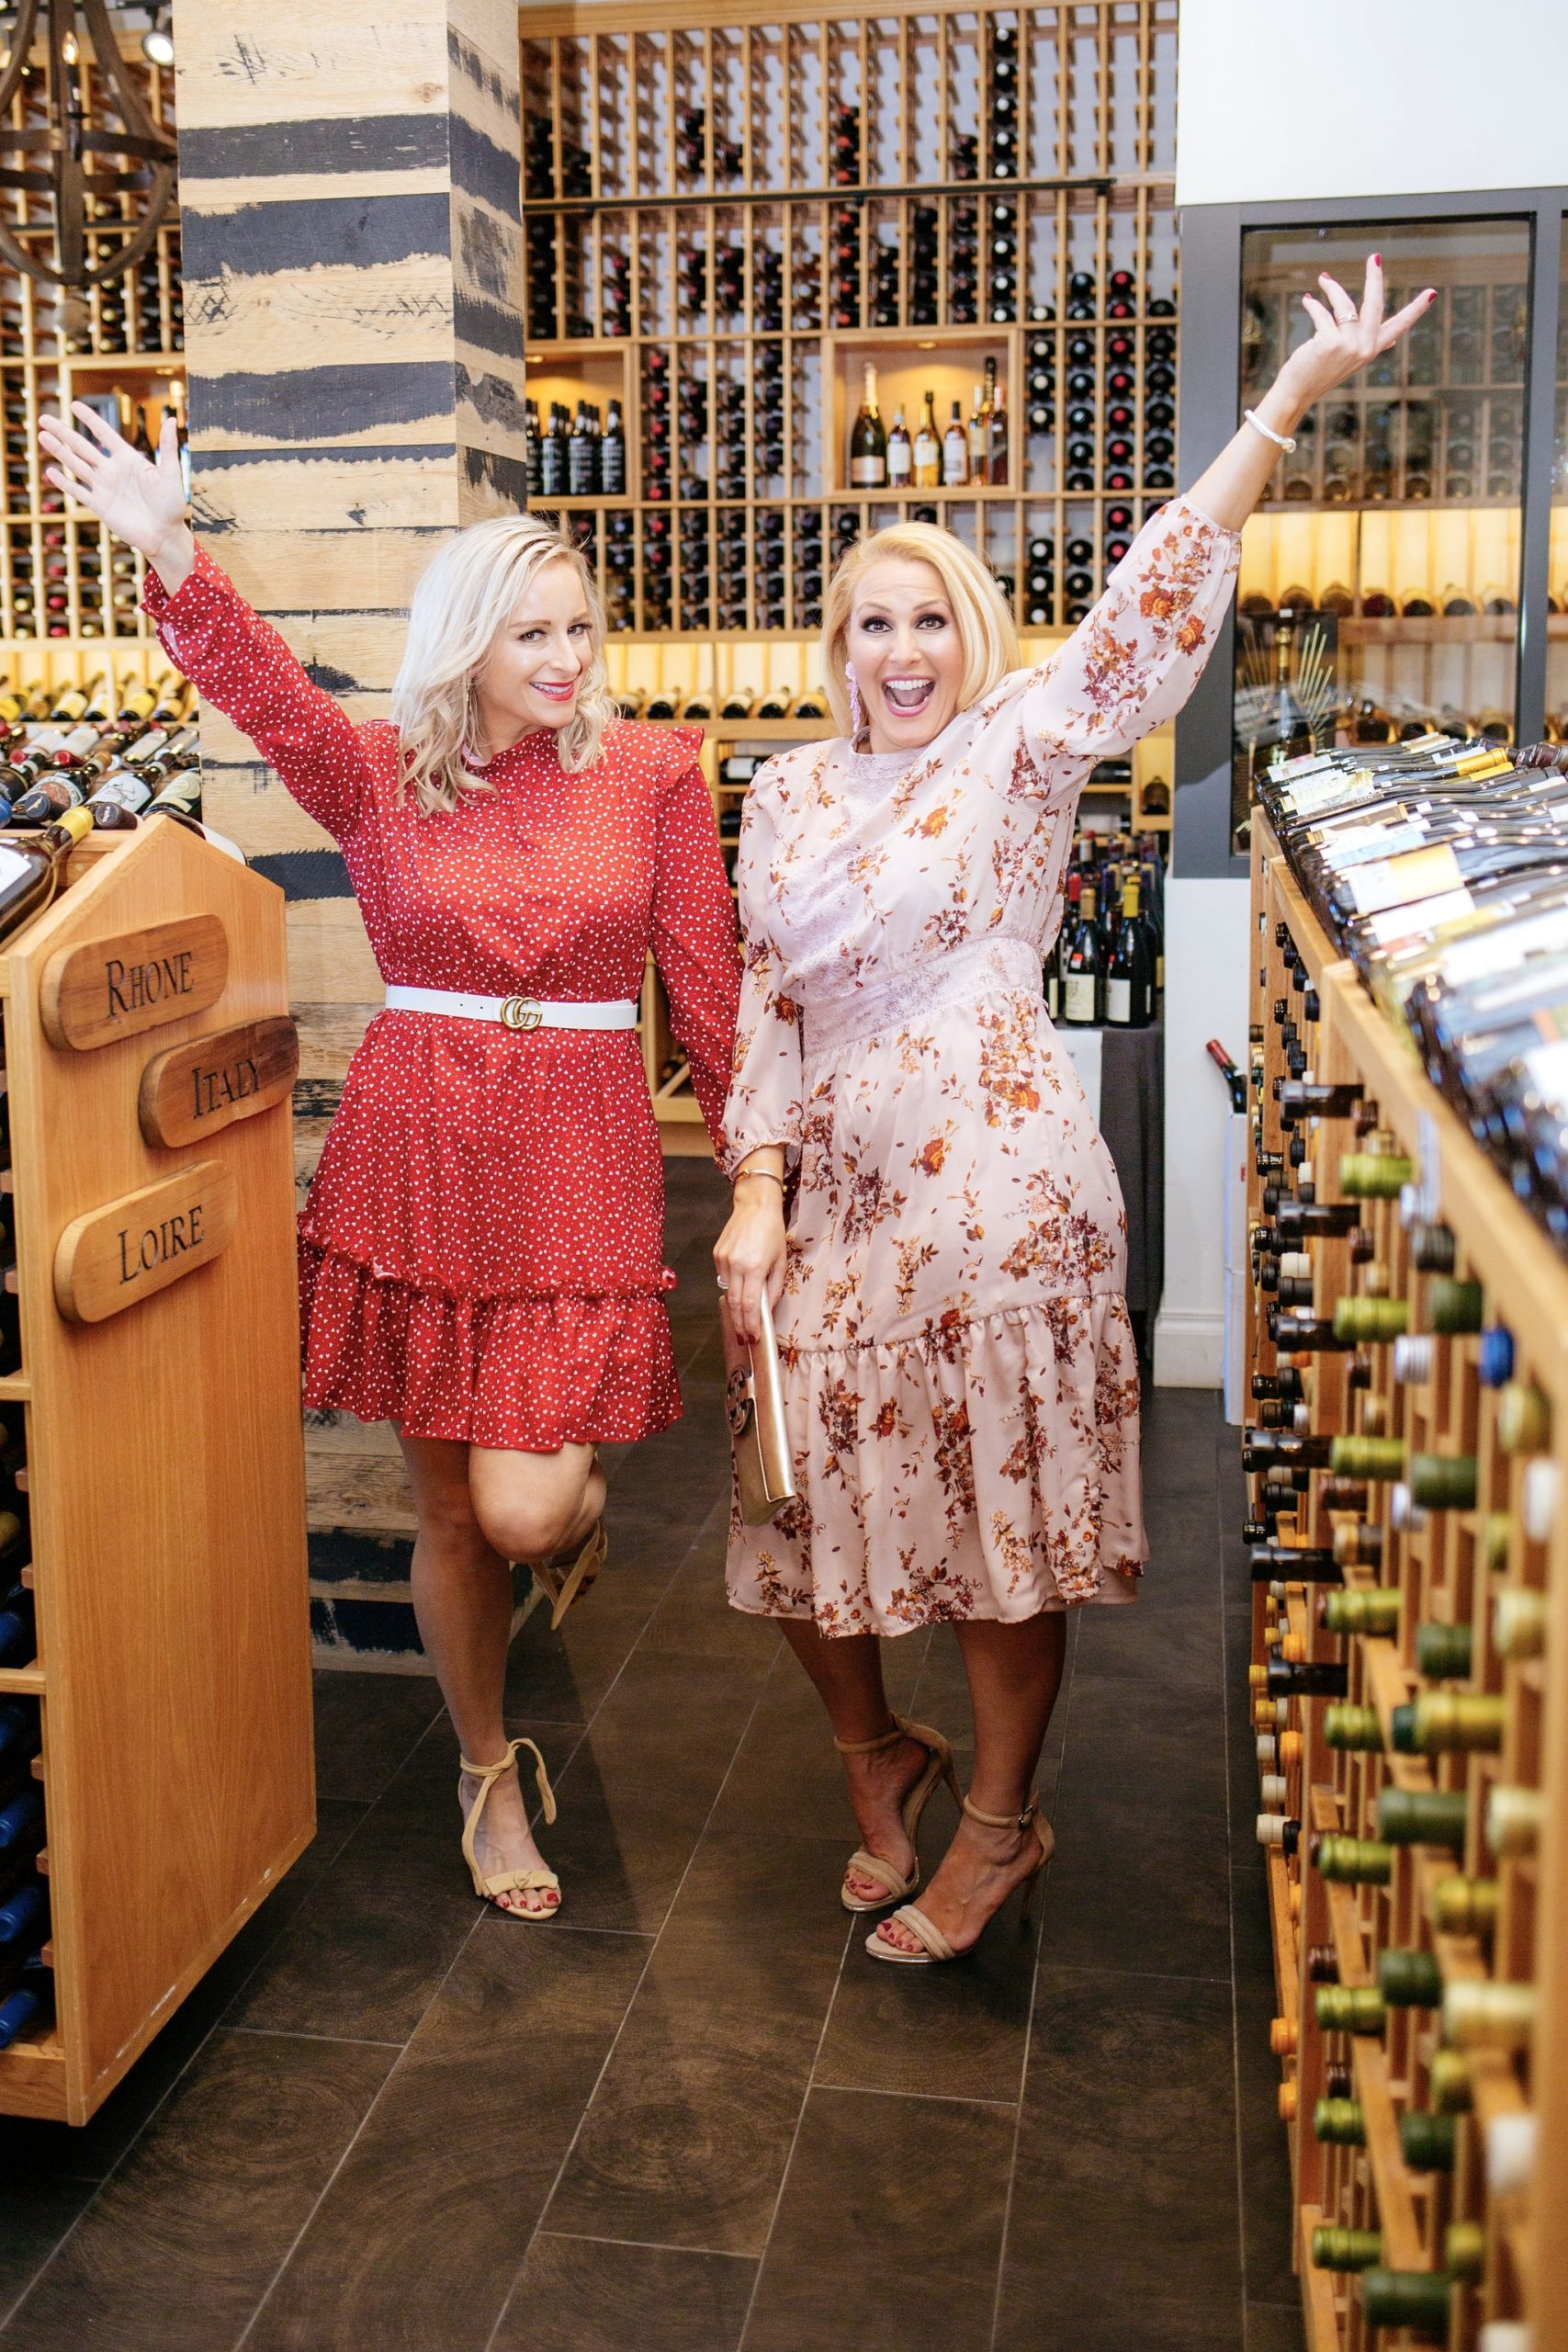 Jenn Truman Tampa Fashion Blogger @jtstjtst11 at Bern's Fine Wines and Spirits standing with her hands in the air showcasing all of the wine options in the store. She's in a pink floral mock neck floral dress from Target. She's holding a Tory Burch gold clutch in one hand and has a smile on her face. She's also wearing pink statement earrings from Lisi Lerch.